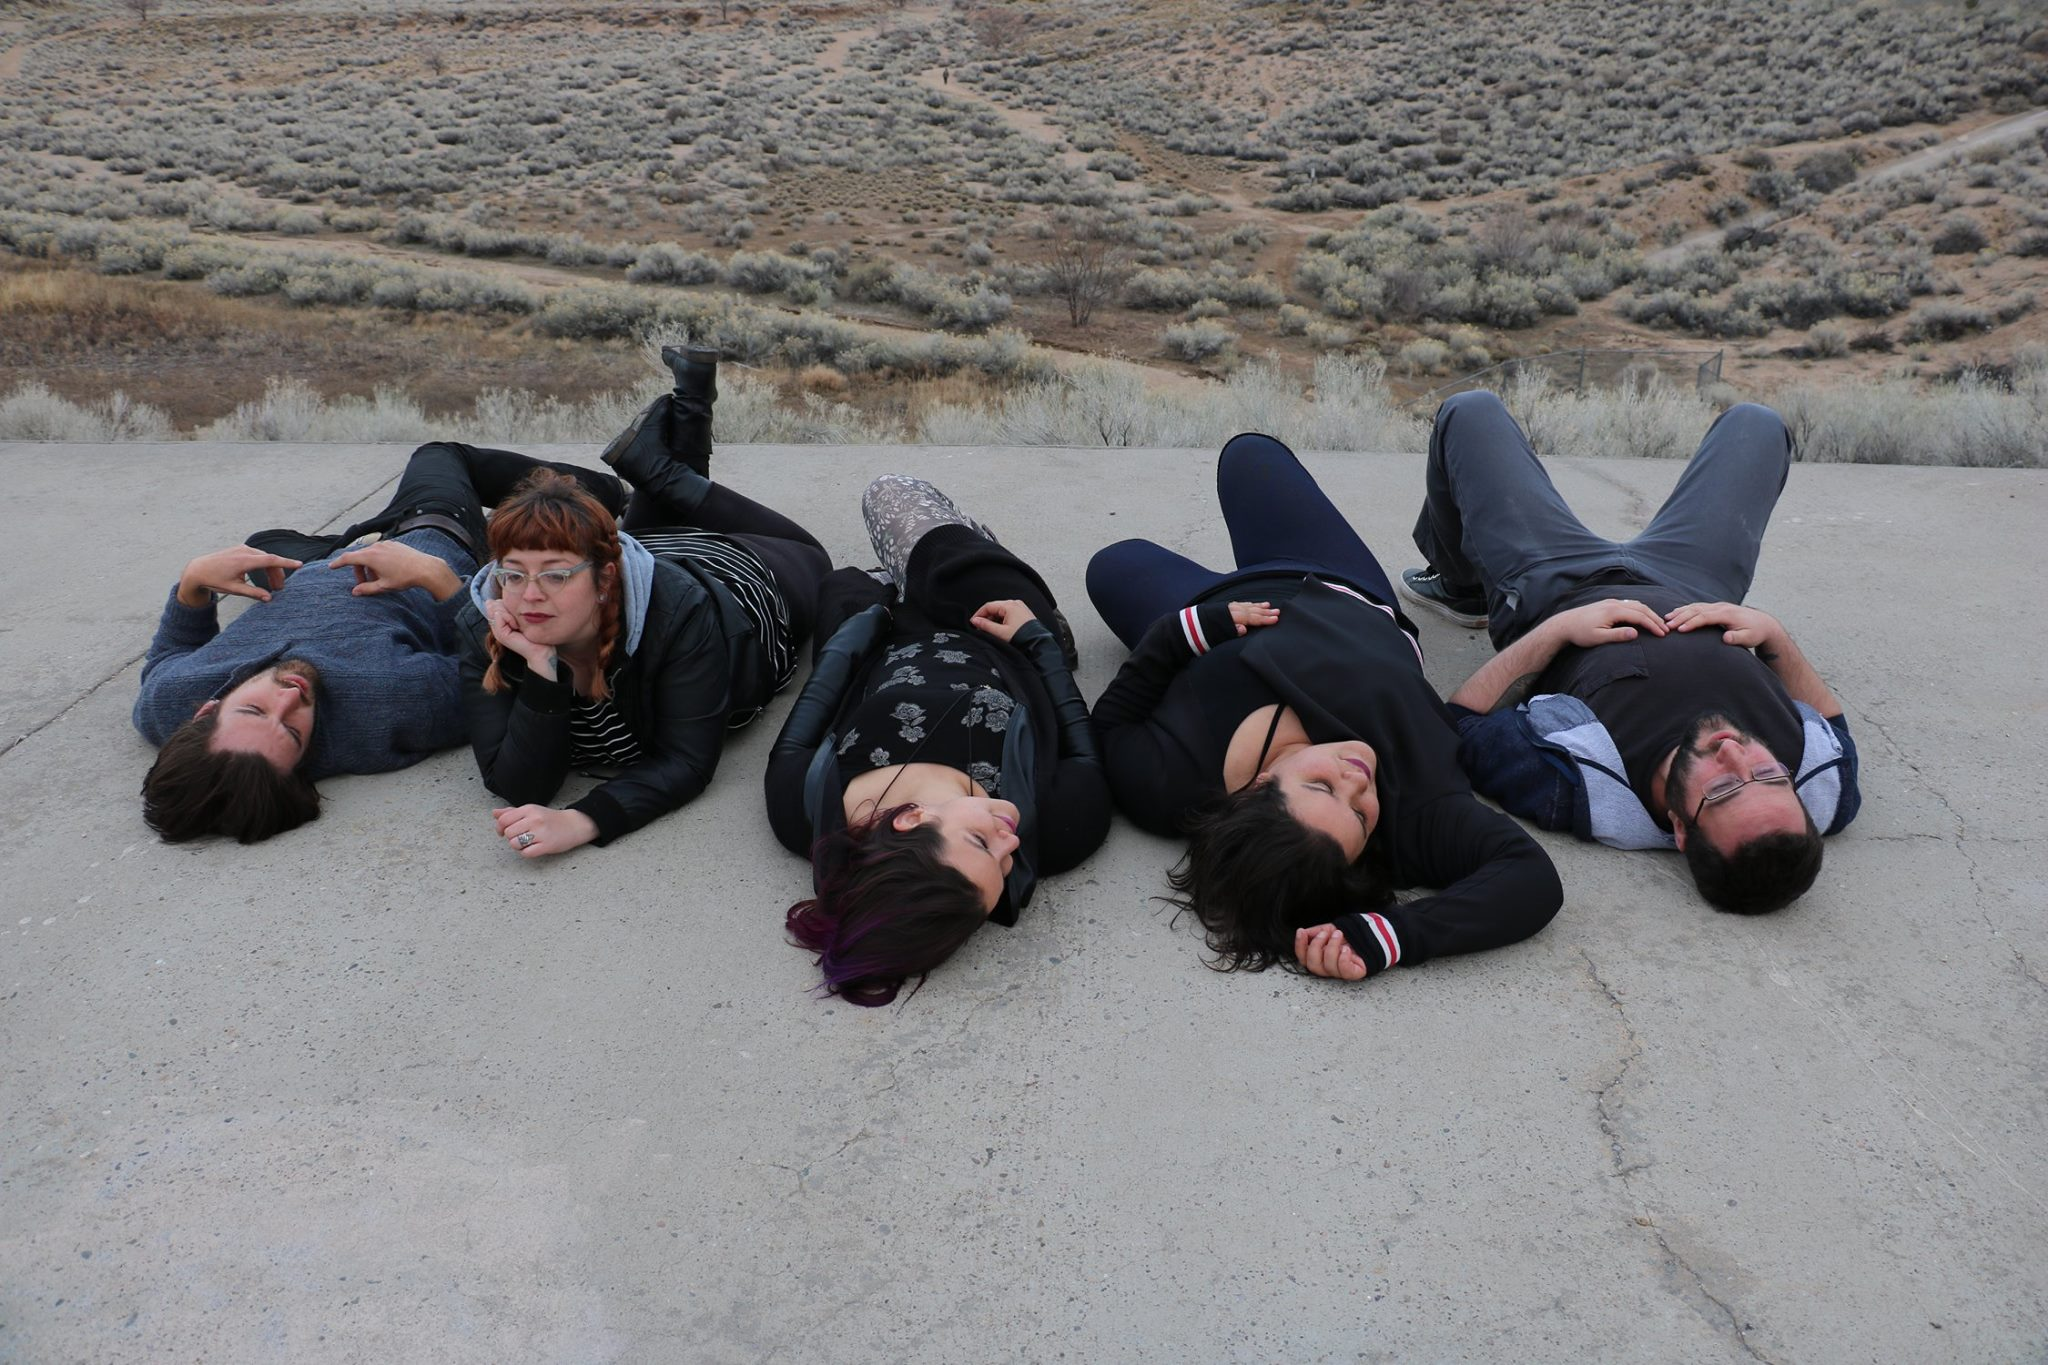 Photo by  Chicharra    [Image Description: Five people lay on their backs on concrete pavement, fanned out in front of a desert landscape.]